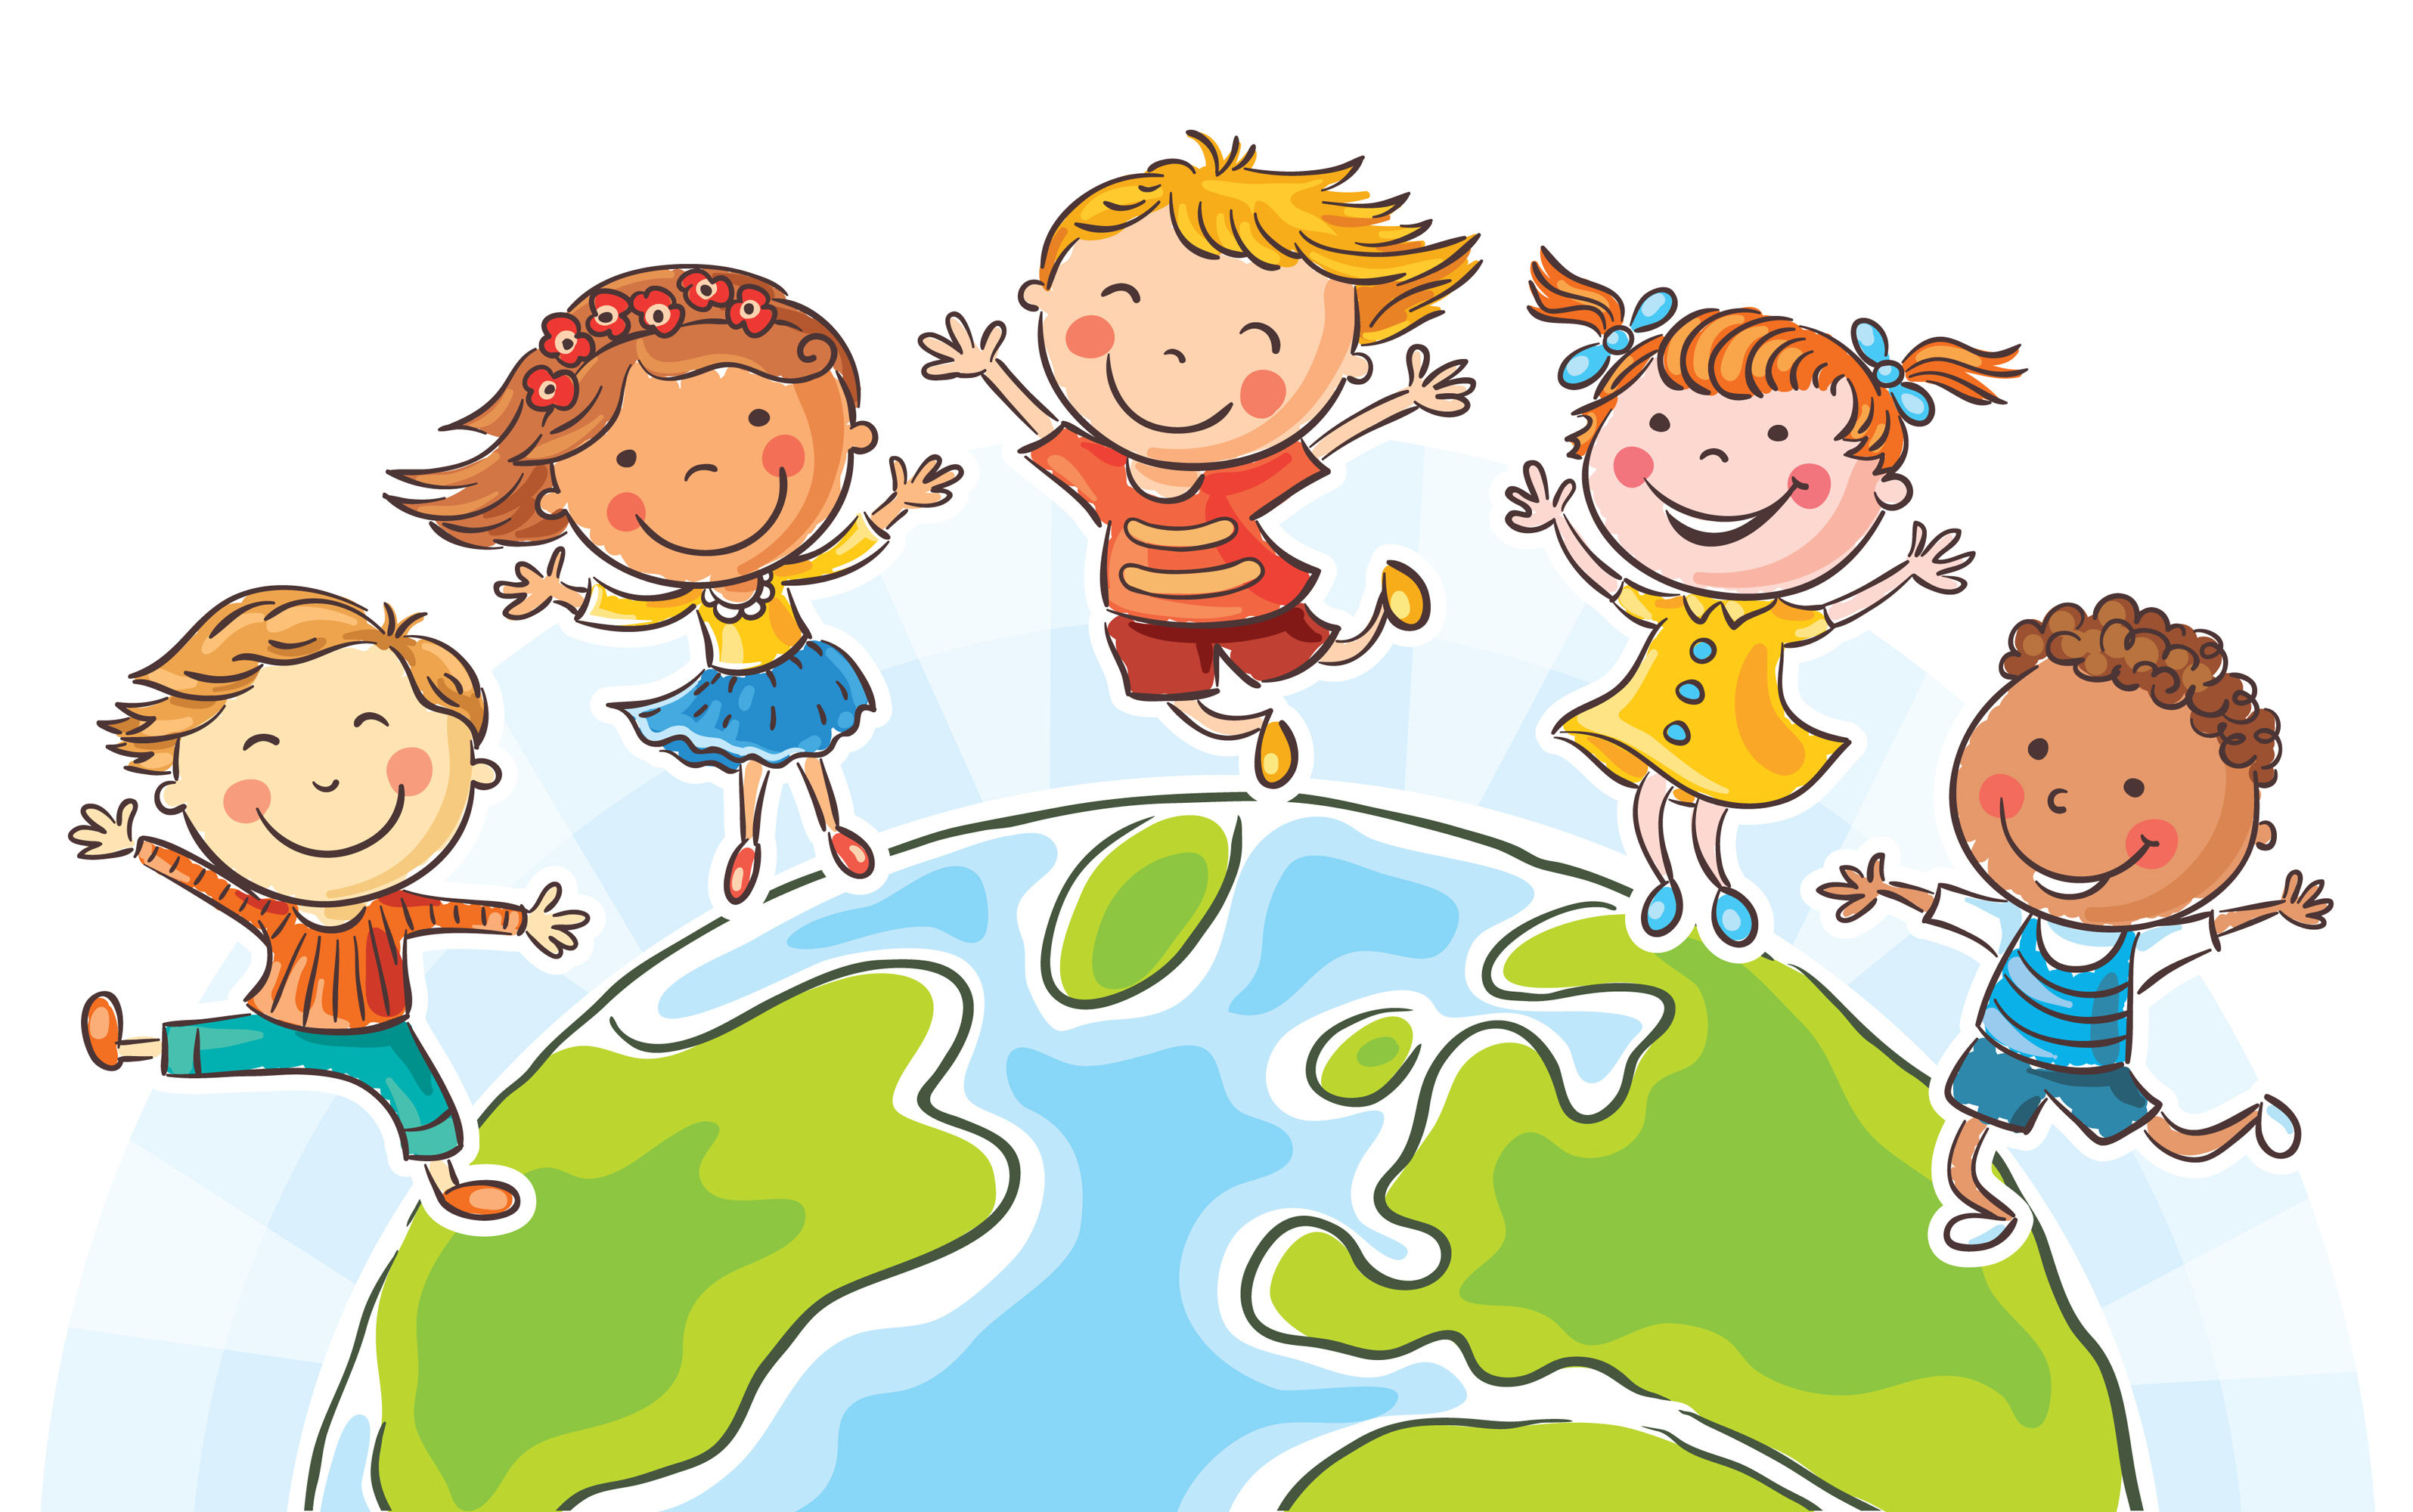 37393518 - five happy jumping kids round the globe, no gradients